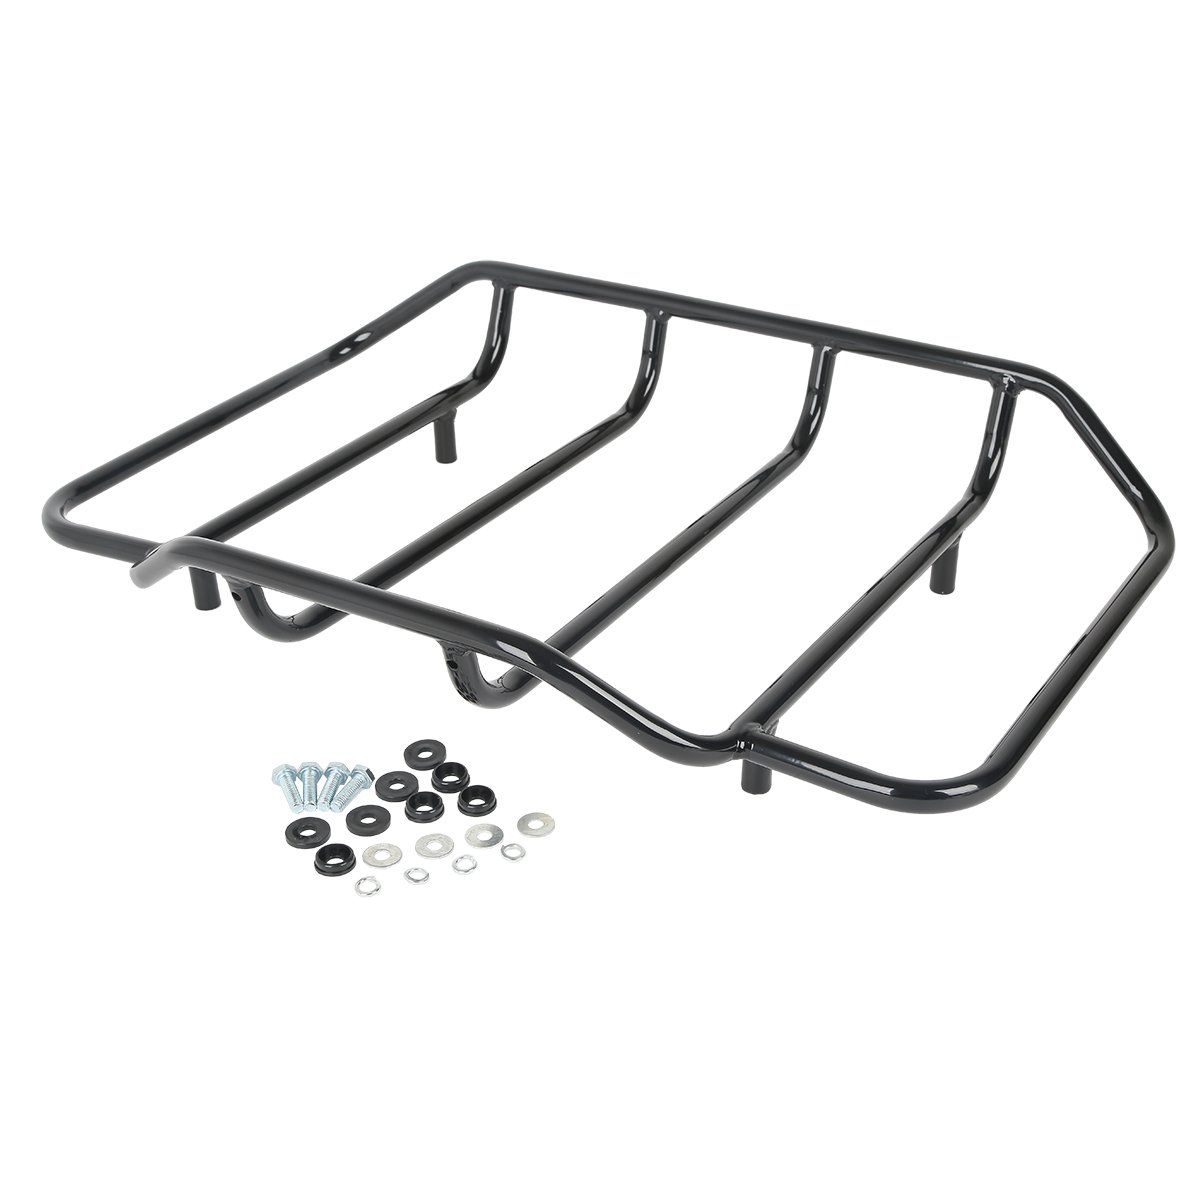 XMT-MOTO Black Tour Pak Luggage Rack For Harley Touring Road King Street Glide Classic(Replace: 53665-87)